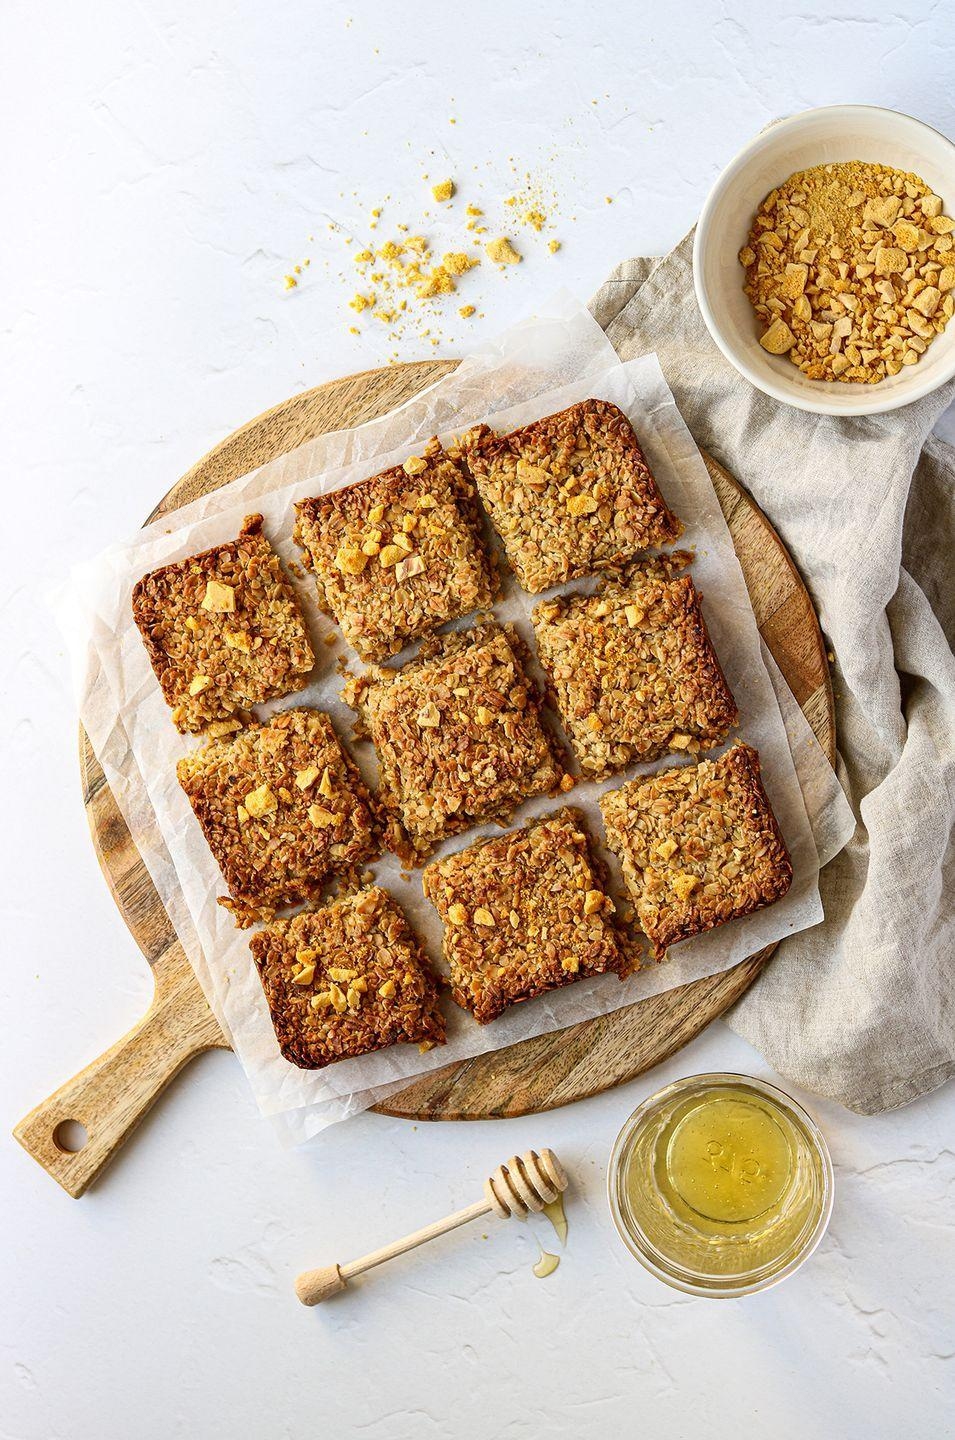 """<p>This classic <a href=""""https://www.delish.com/uk/cooking/recipes/a35487496/banana-flapjack/"""" rel=""""nofollow noopener"""" target=""""_blank"""" data-ylk=""""slk:flapjack"""" class=""""link rapid-noclick-resp"""">flapjack</a> recipe uses honey instead of golden syrup, but still super sweet, and super tasty. We've added <a href=""""https://www.delish.com/uk/cooking/recipes/a34503744/classic-honey-cake-recipe/"""" rel=""""nofollow noopener"""" target=""""_blank"""" data-ylk=""""slk:honeycomb"""" class=""""link rapid-noclick-resp"""">honeycomb</a> pieces for added texture, but leave out if you prefer. </p><p>Get the <a href=""""https://www.delish.com/uk/cooking/recipes/a35487495/flapjack-recipe-honey/"""" rel=""""nofollow noopener"""" target=""""_blank"""" data-ylk=""""slk:Classic Honey Flapjack"""" class=""""link rapid-noclick-resp"""">Classic Honey Flapjack</a> recipe</p>"""